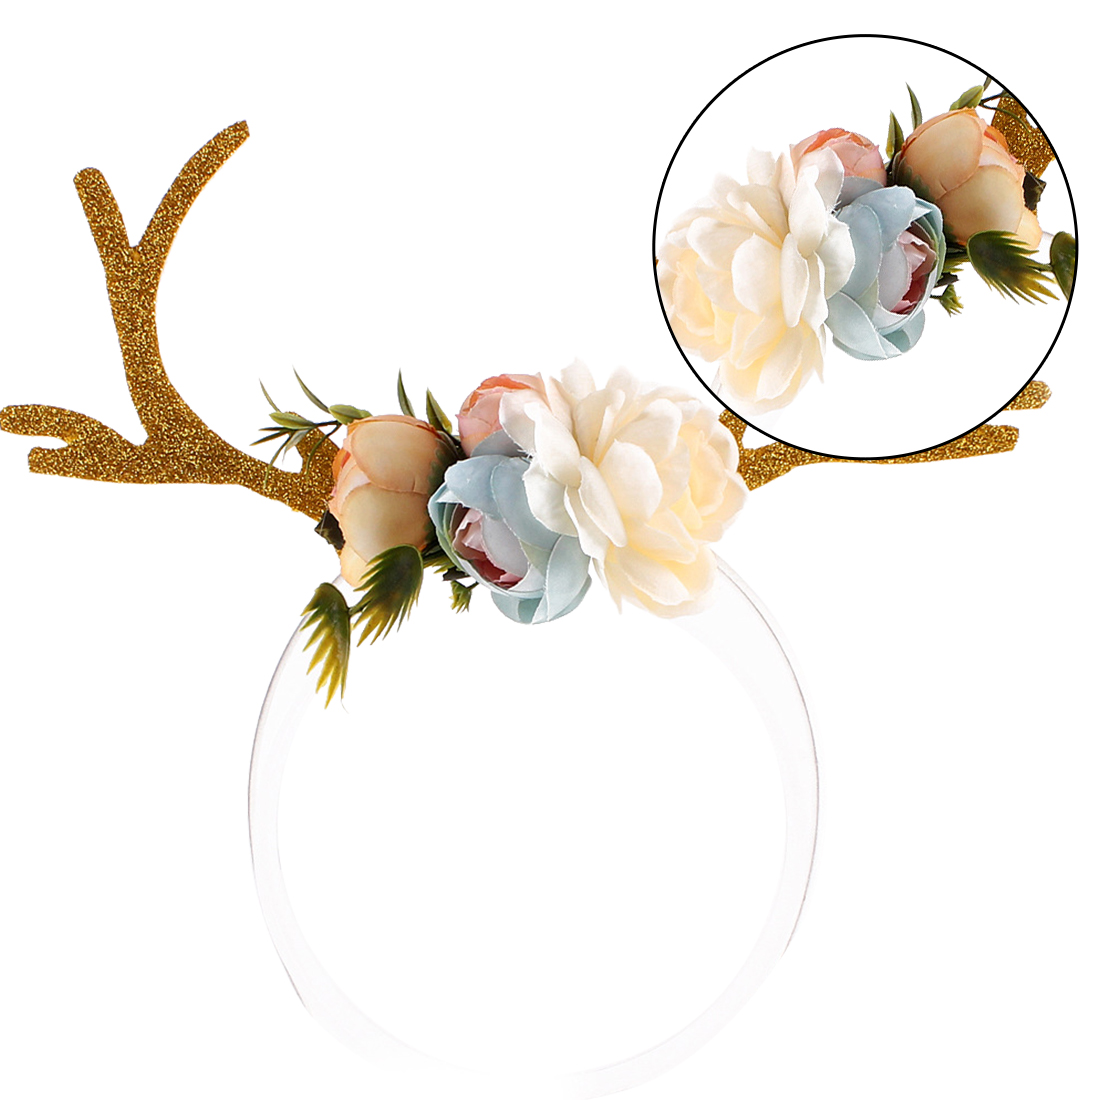 New Arrival Headband Gift Women Girls Christmas Deer Antlers Costume Ear Party Hair Floral Hairband Hair Accessories for Girls